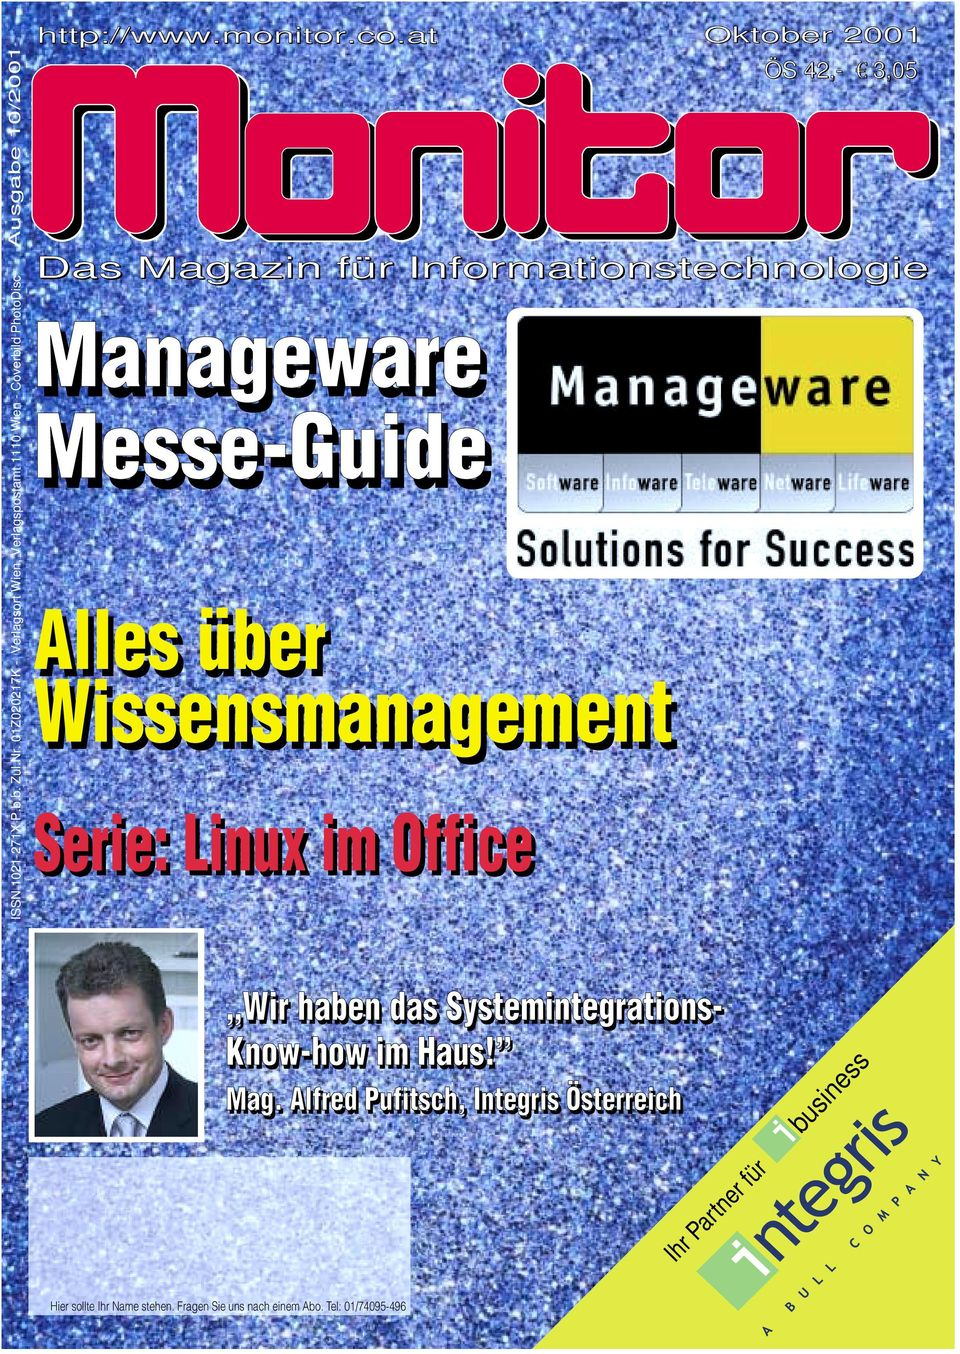 at Oktober 2001 ÖS S 42,- 3,05 Das Magazin für Informationstechnologie Manageware Messe-Guide Alles über